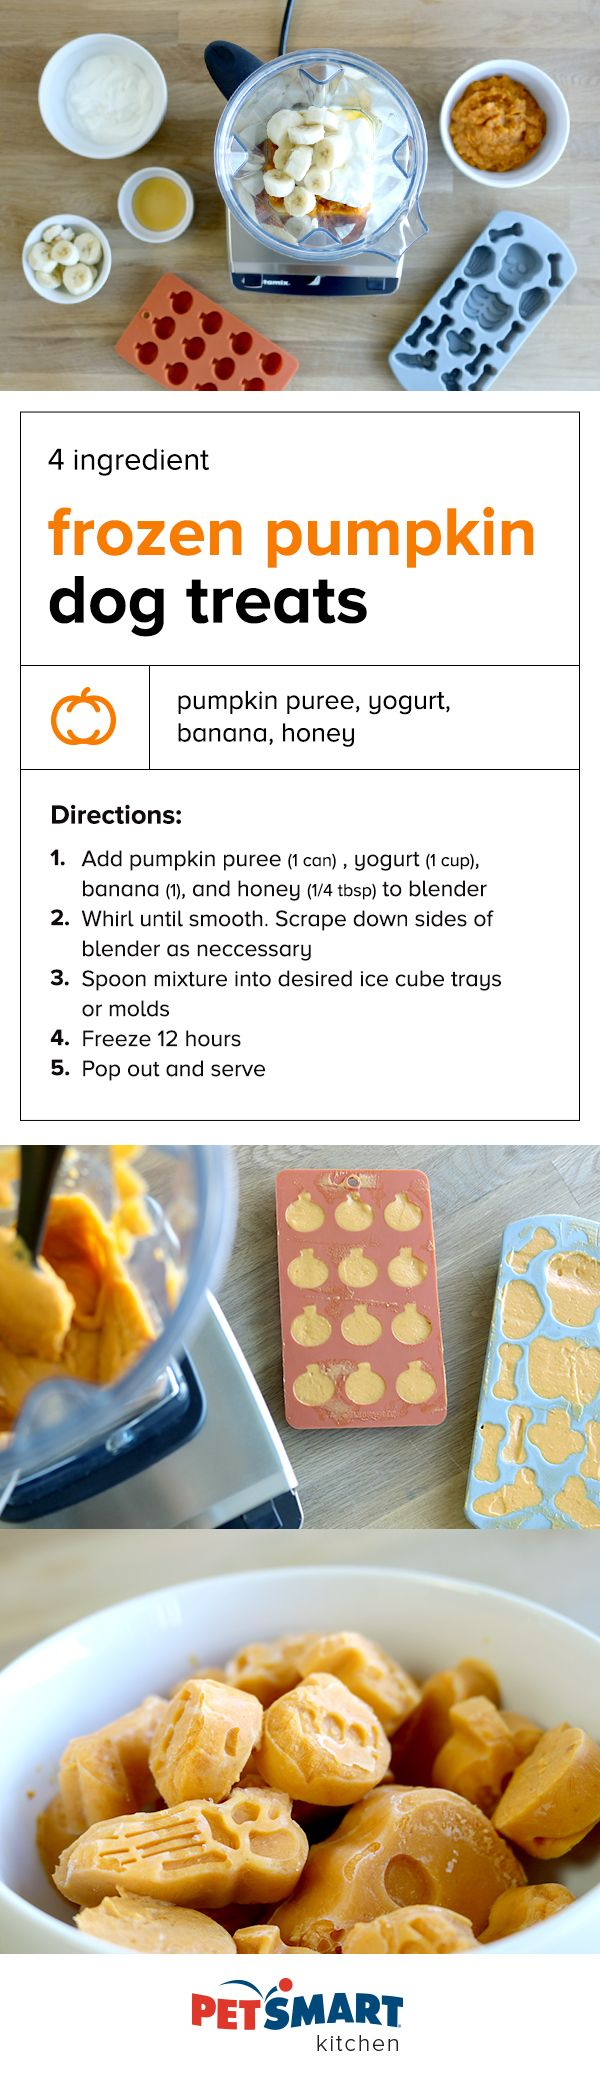 4 Ingredient Frozen Pumpkin Dog Treats. Blend, pour, and freeze. Just a few easy steps to a pumpkin treat your pup will love!   Recipe inspired from Dogvills blog. These treats should be tolerated by dogs who do not have allergies to any of the listed ingredients and are fat-tolerant. Some medical conditions and genetic diseases cause a dog to be fat-intolerant.